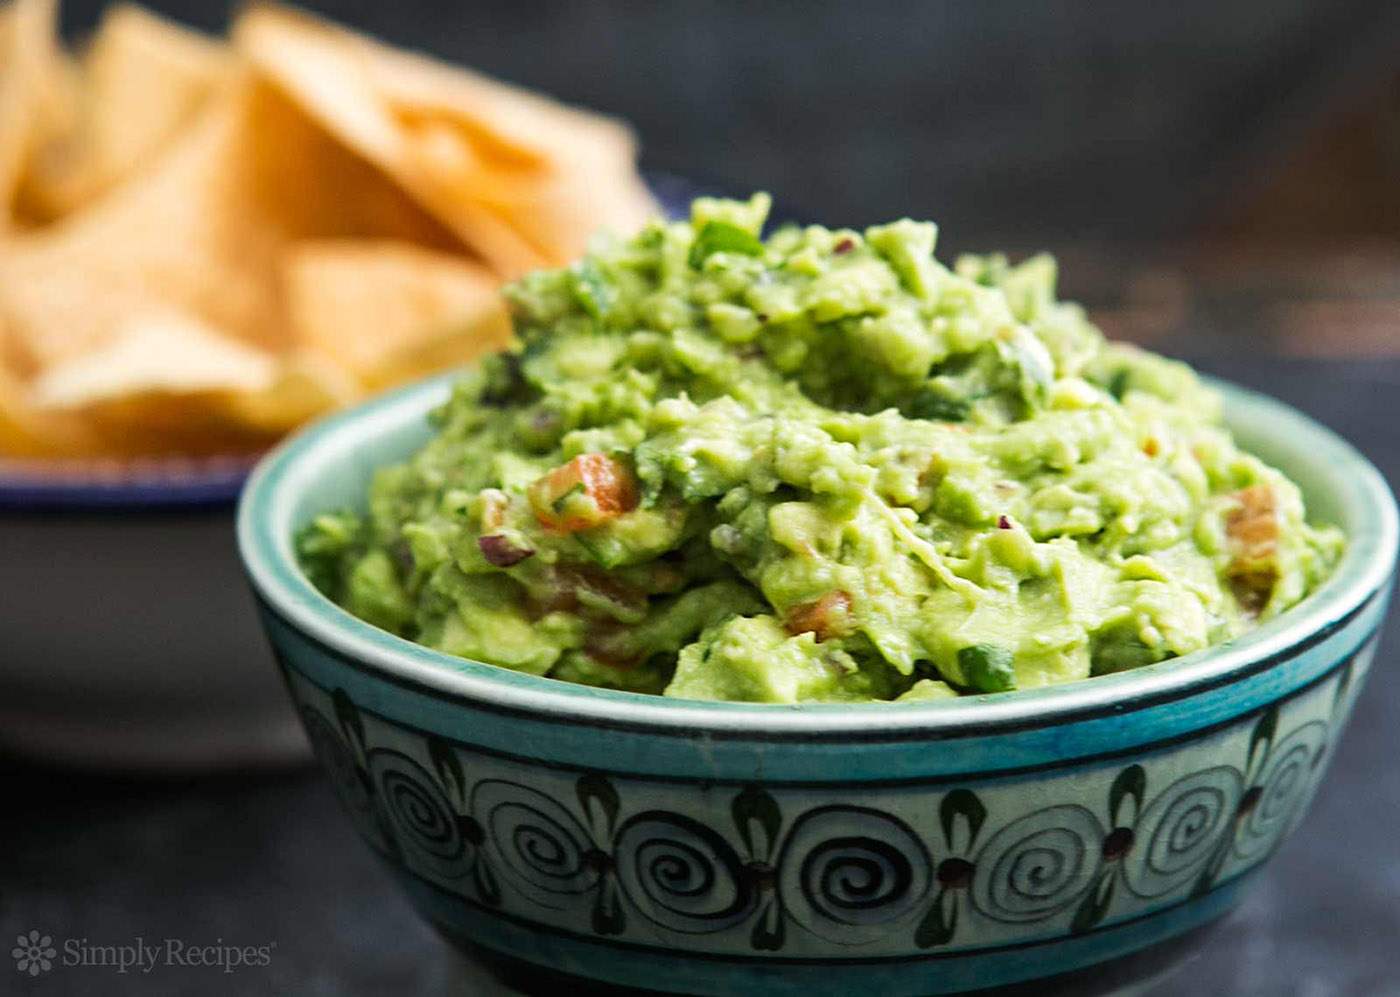 How to Make Perfect Guacamole - Guacamole Recipe